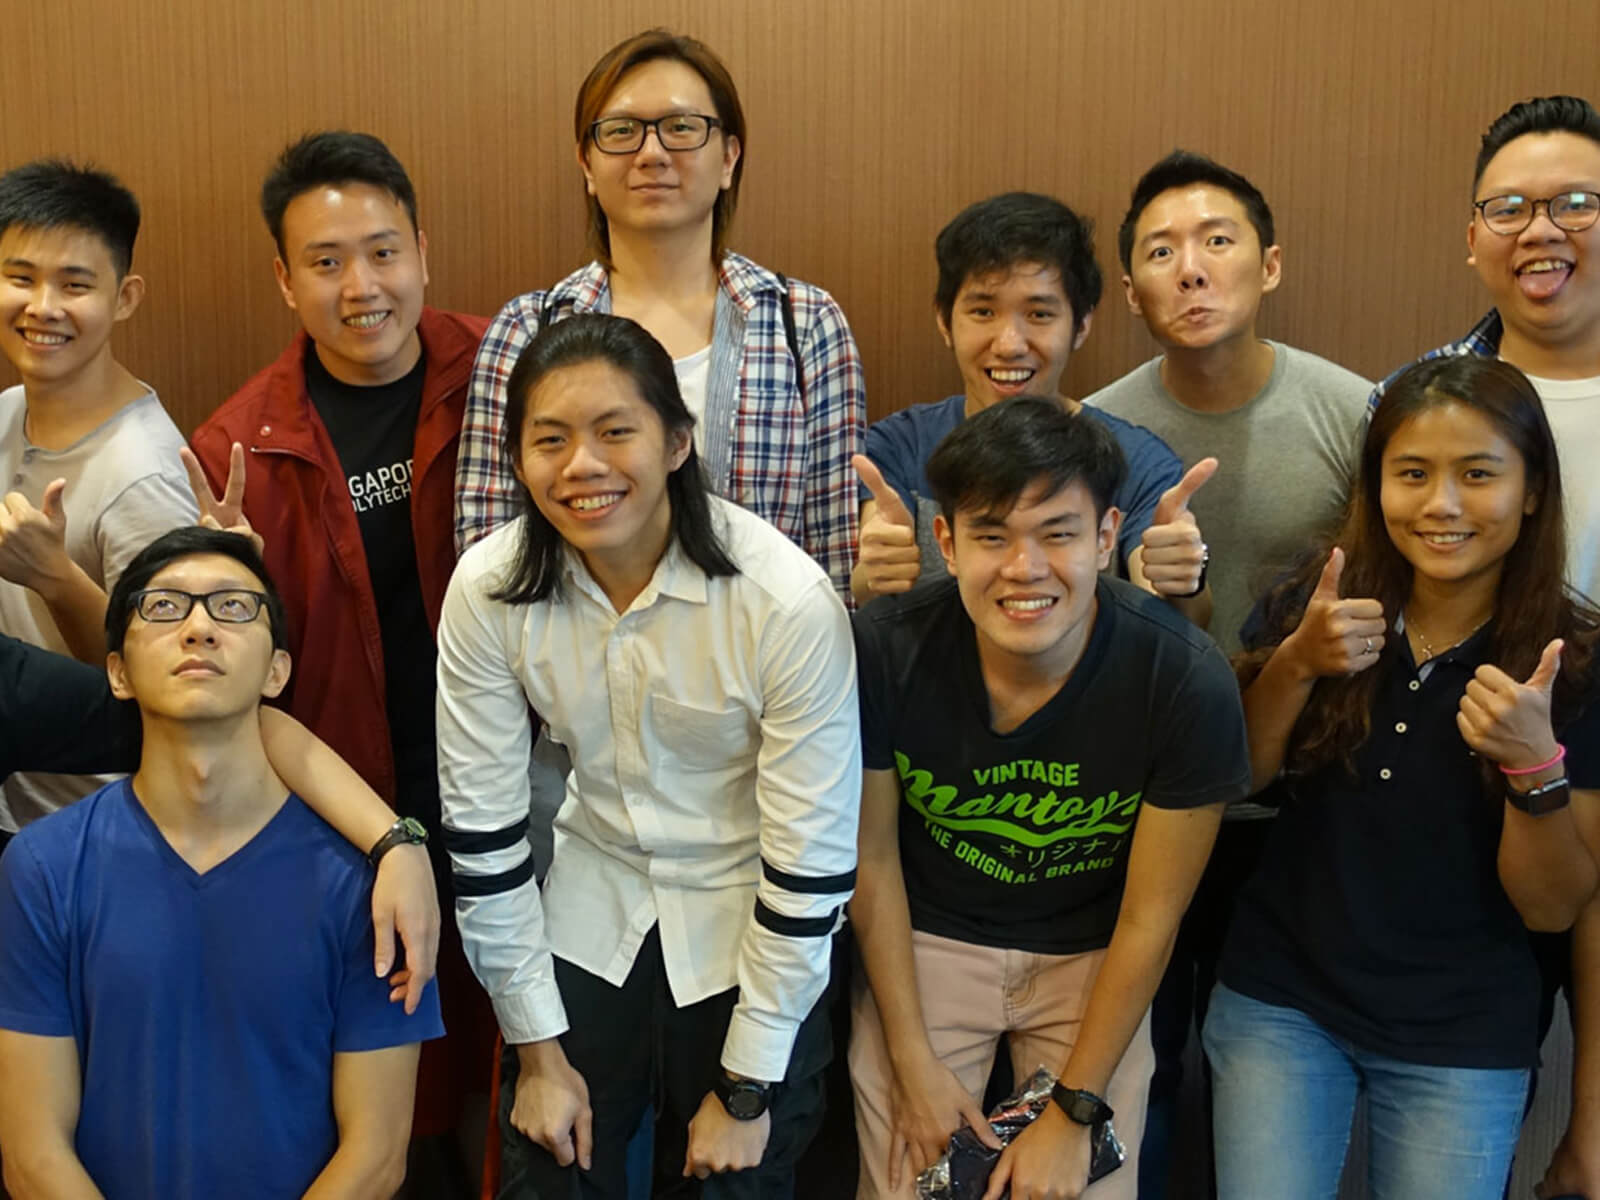 A large group of DigiPen (Singapore) Student Ambassadors smile for the camera, flashing peace and thumbs-up signs